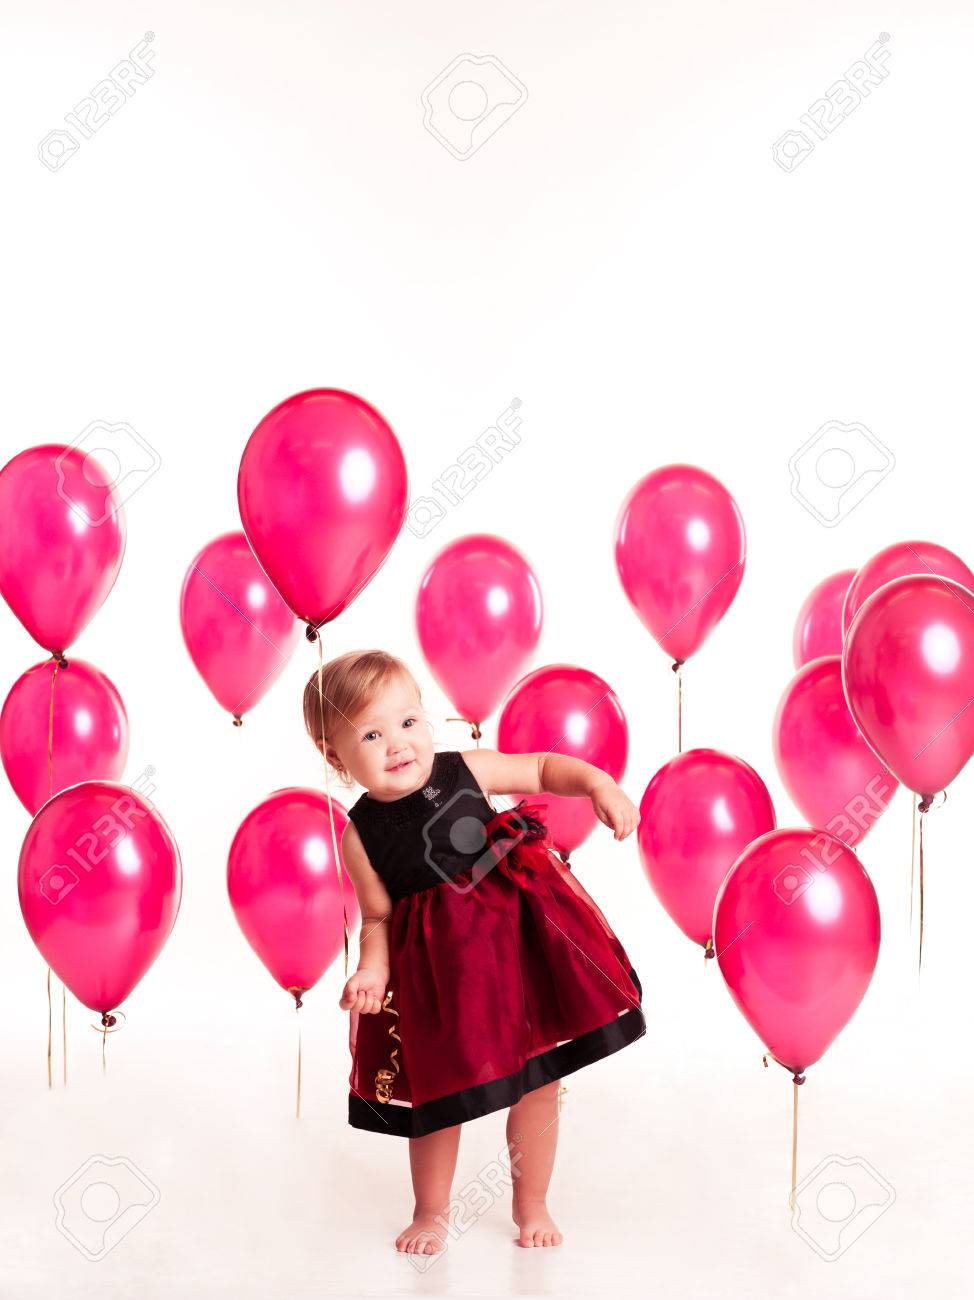 Smiling Baby Girl 1 2 Year Old Playing With Pink Balloons In Room Over White